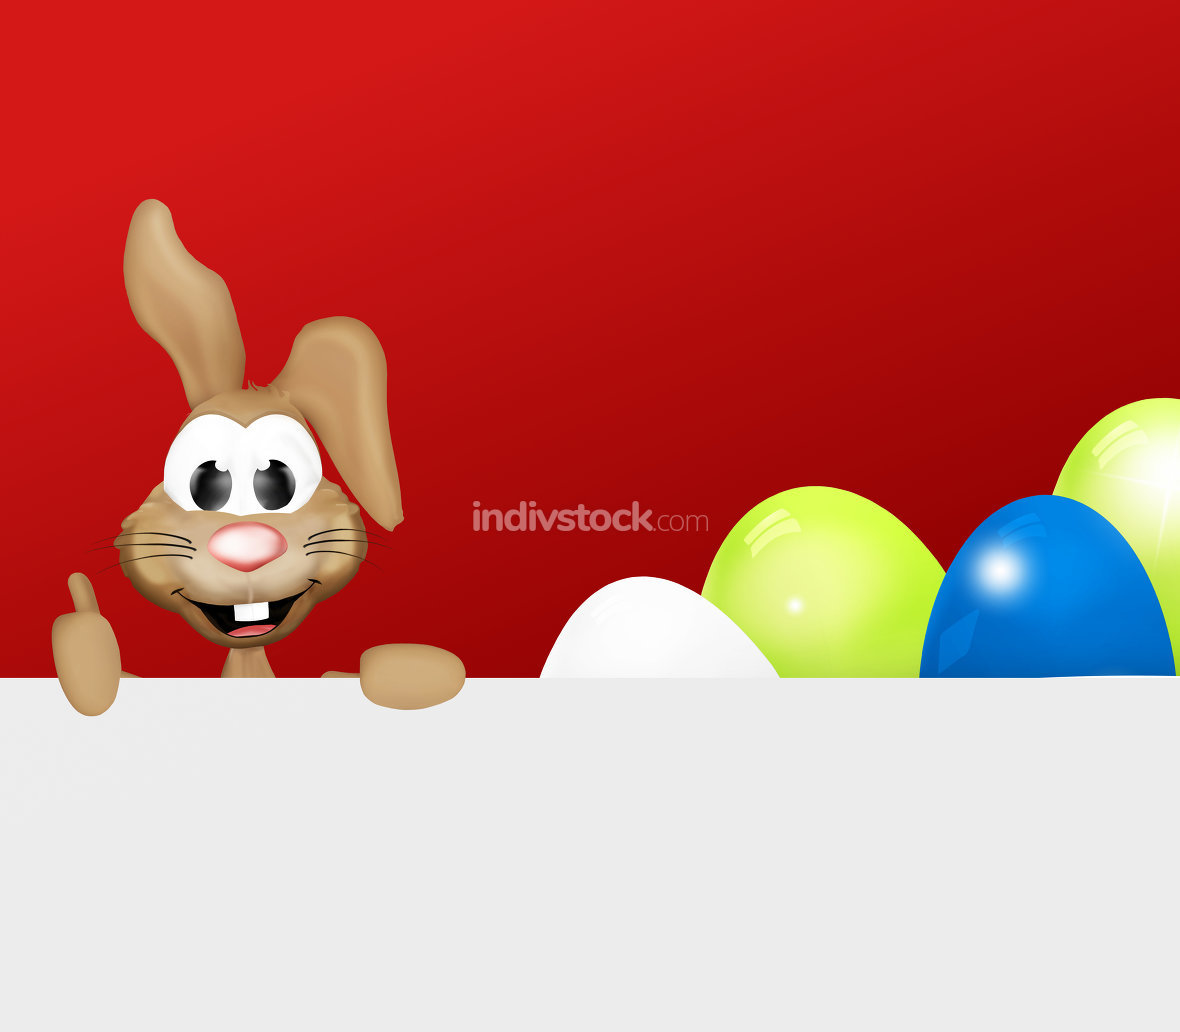 Festive happy Easter Bunny thumbs up